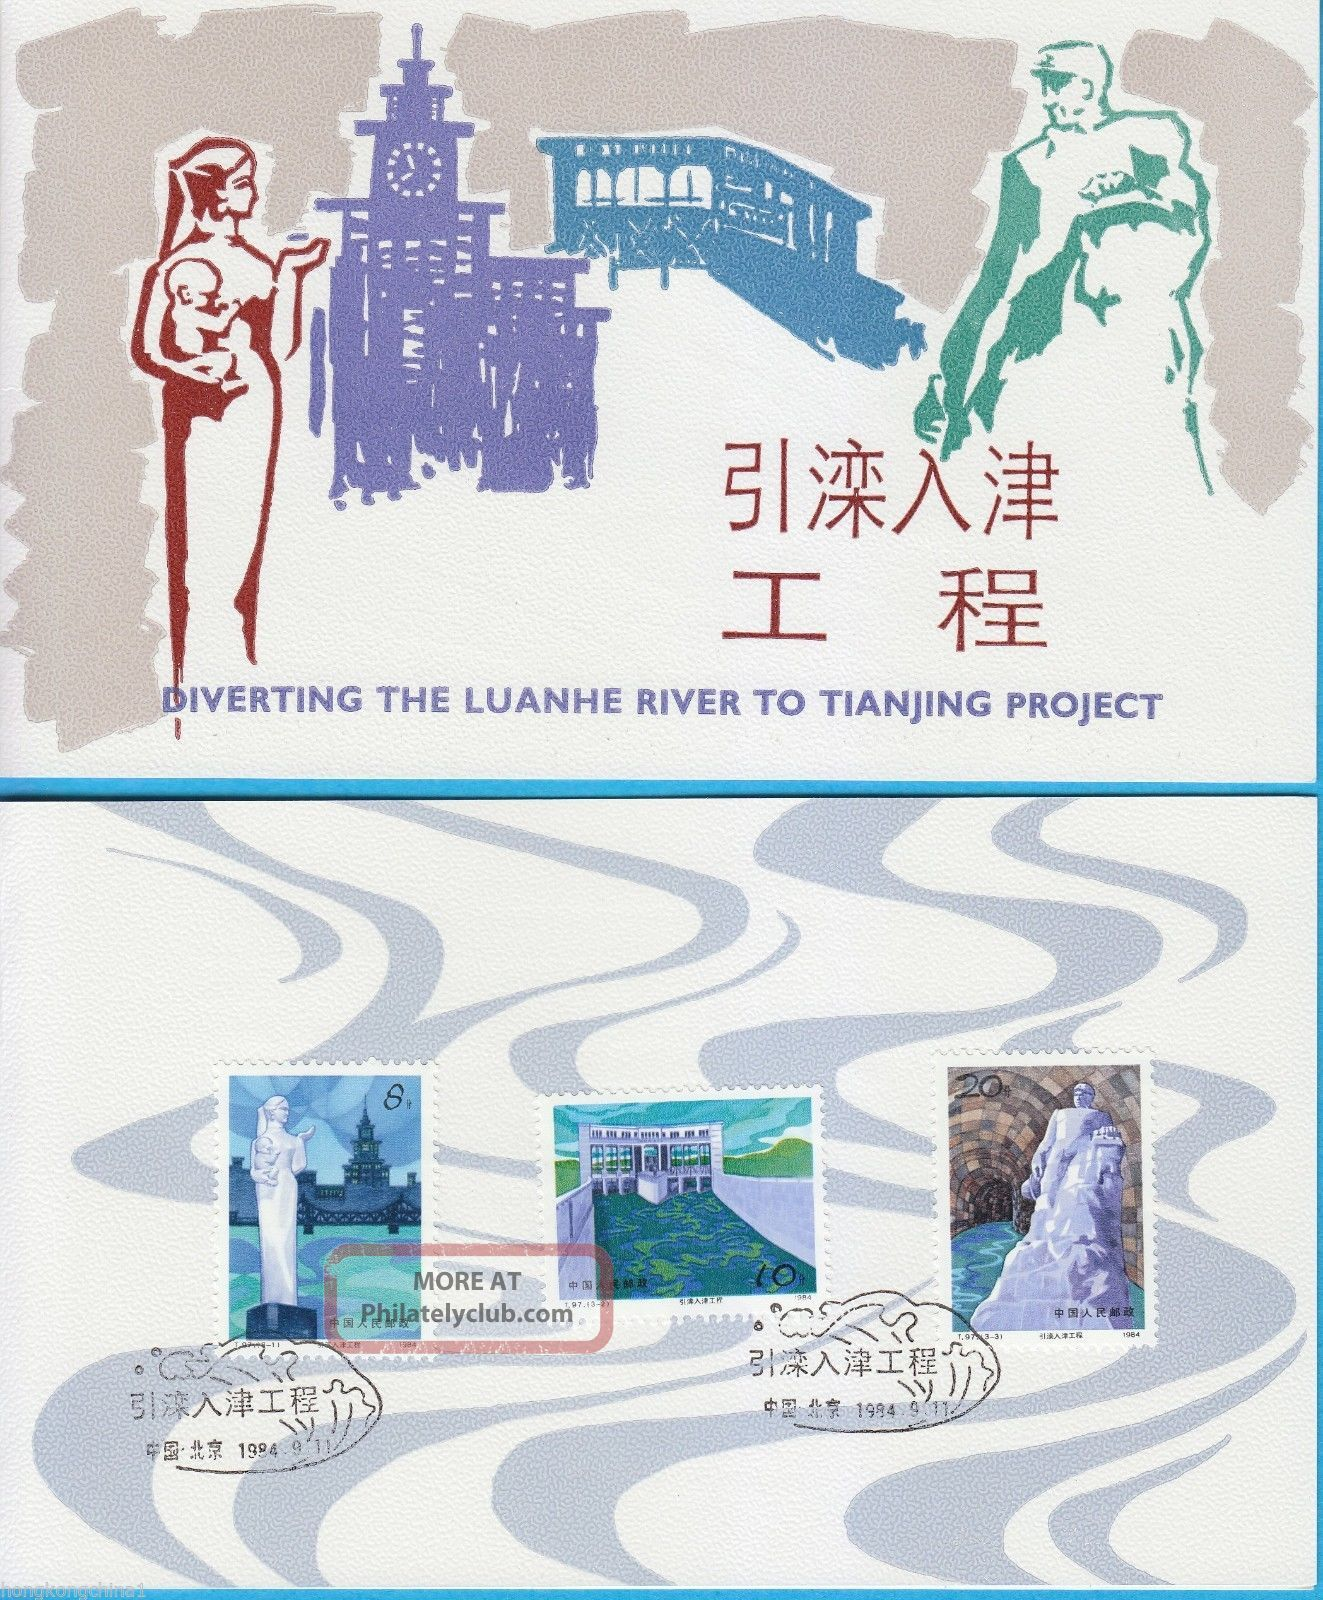 China Stamp Fdc 1984 T97 Diverting The Luanhe River To Tianjing Project Cn134740 Asia photo